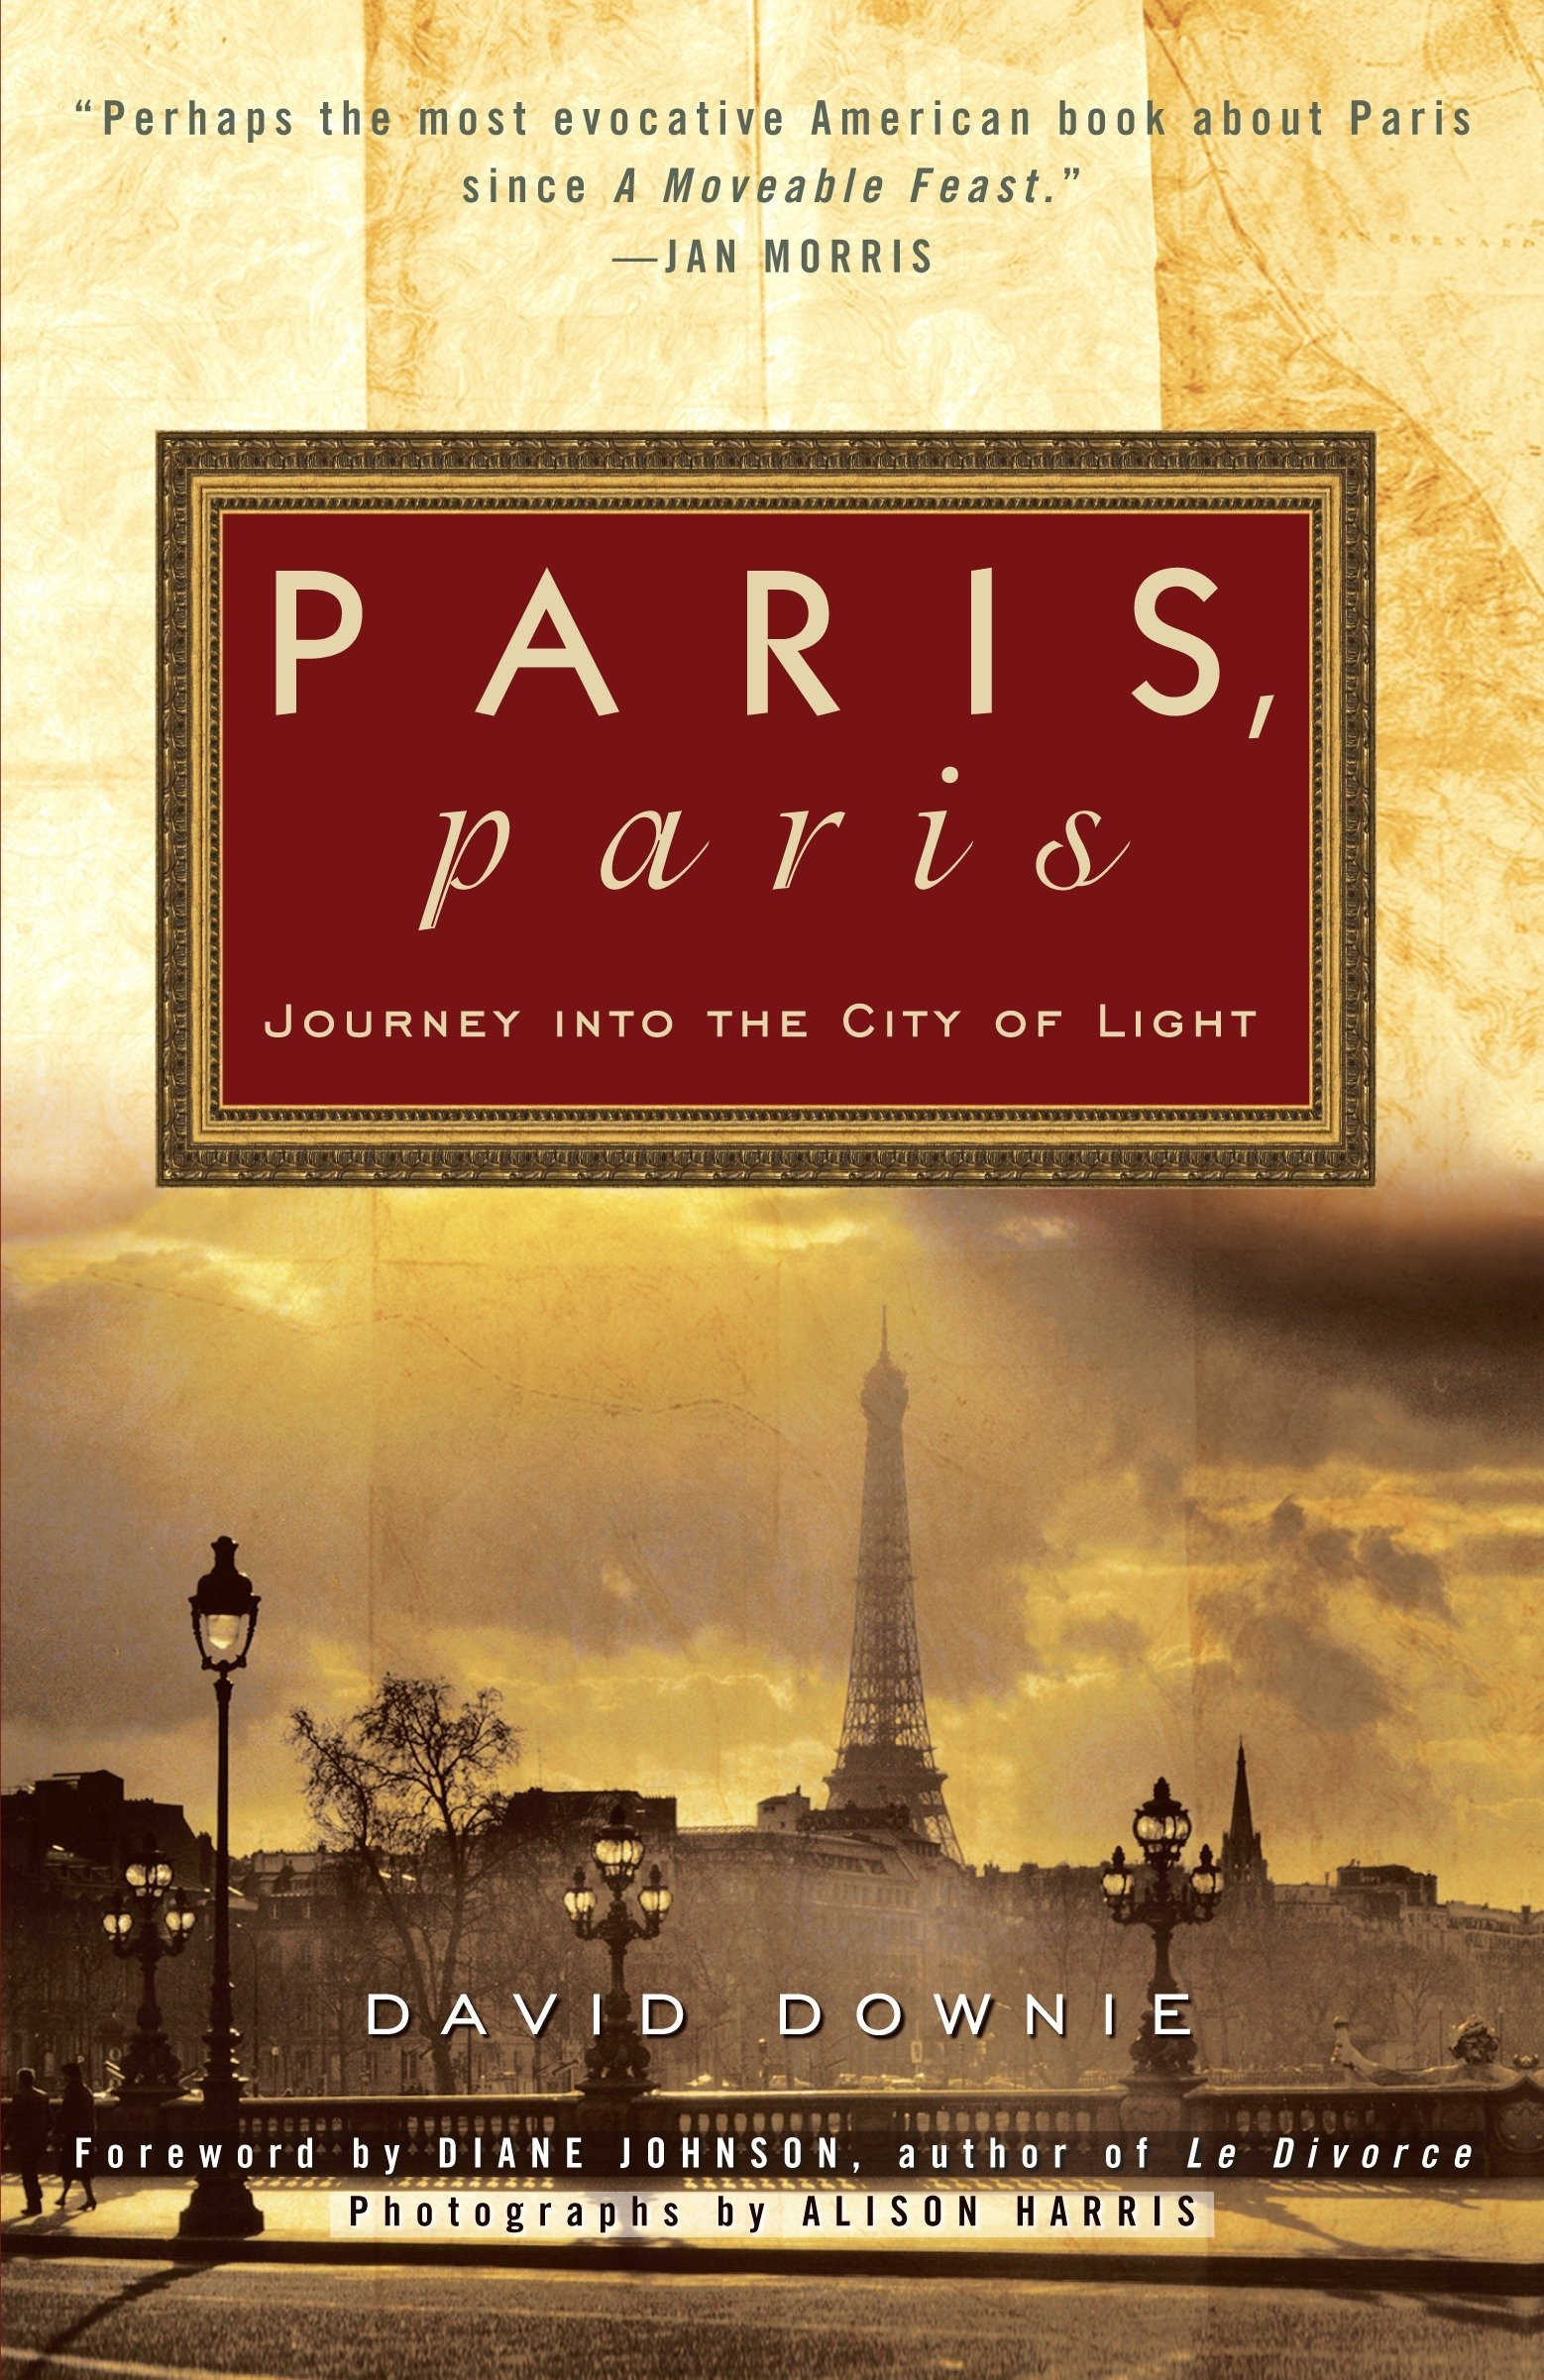 Paris, Paris: Journey into the City of Light: David Downie, Alison Harris,  Diane Johnson: 9780307886088: Amazon.com: Books